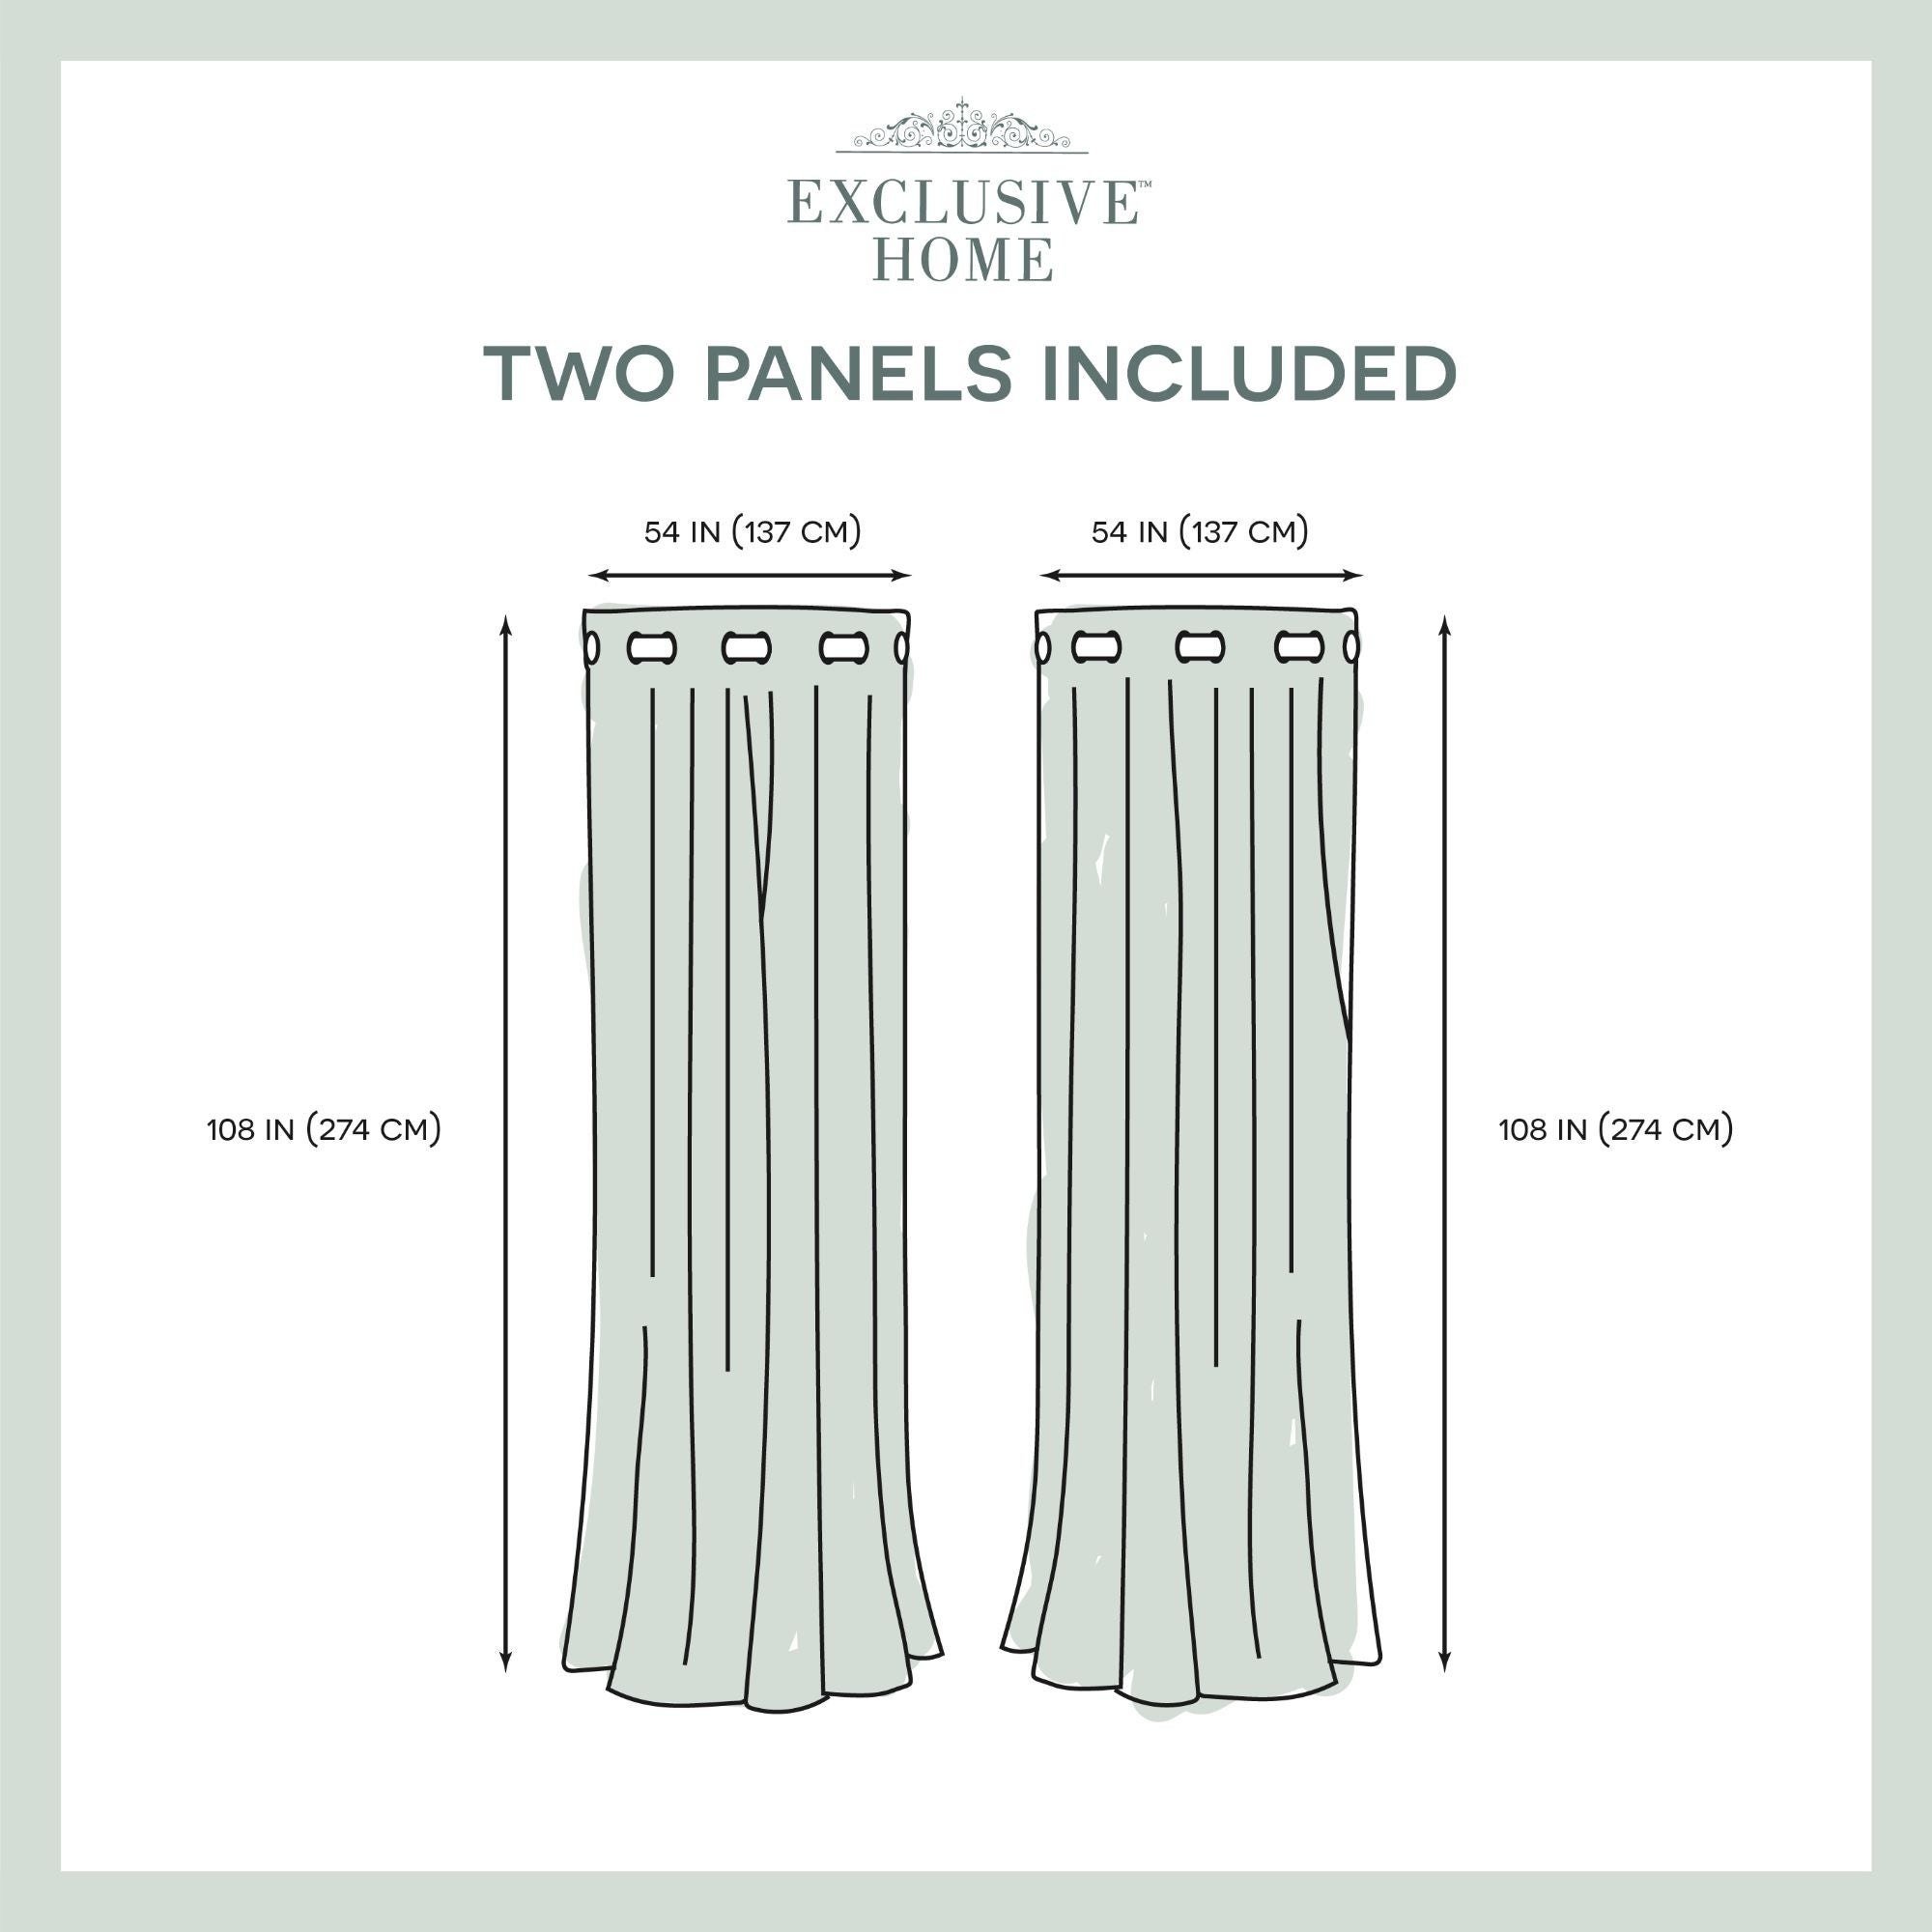 Ati Home Twig Insulated Blackout Curtain Panel Pair With Grommet Top With Regard To Twig Insulated Blackout Curtain Panel Pairs With Grommet Top (View 11 of 30)